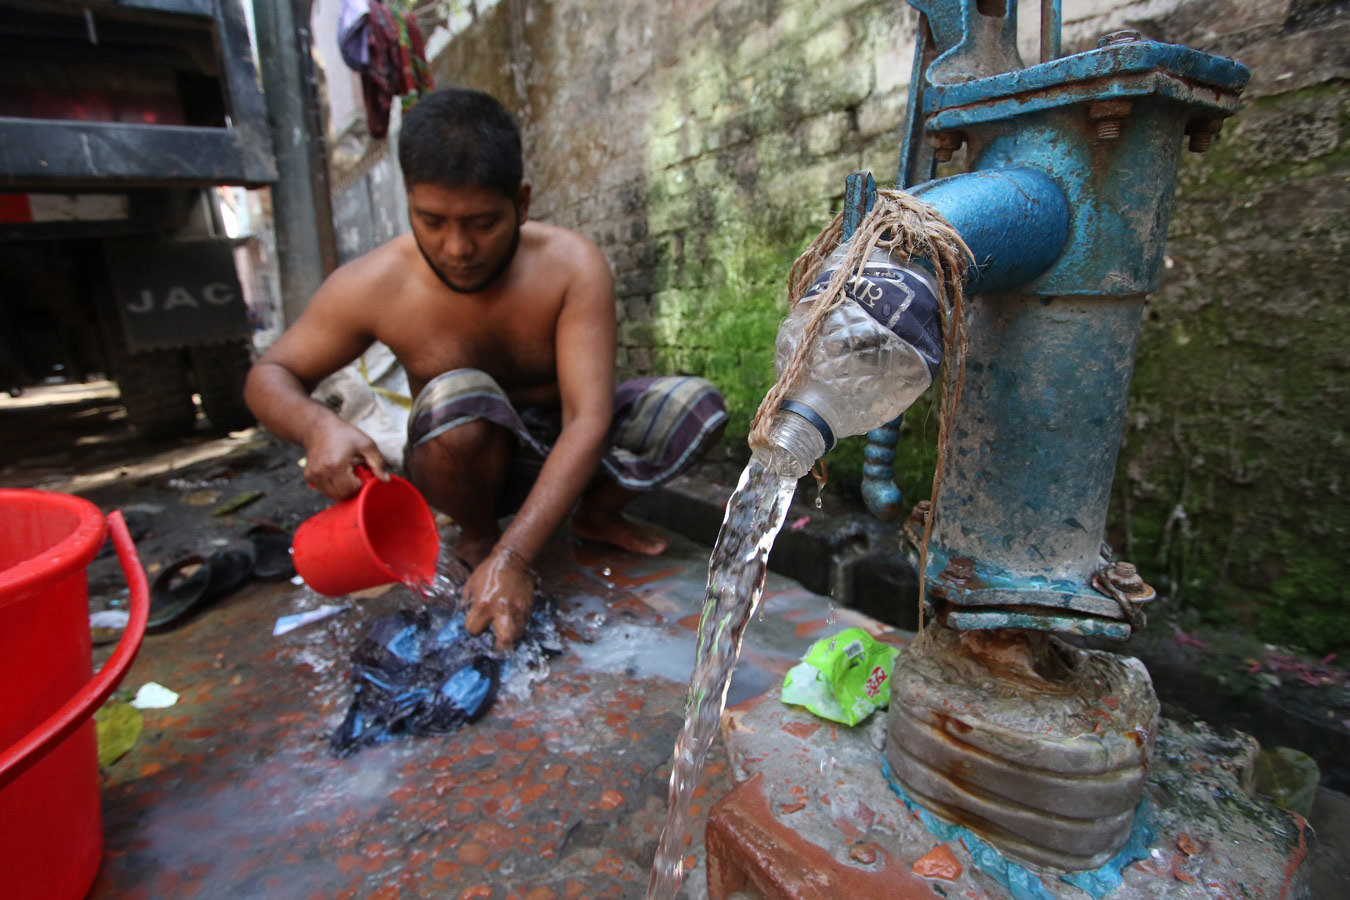 © Sudeepto Salam, Gender and Water Integrity Photo Competition